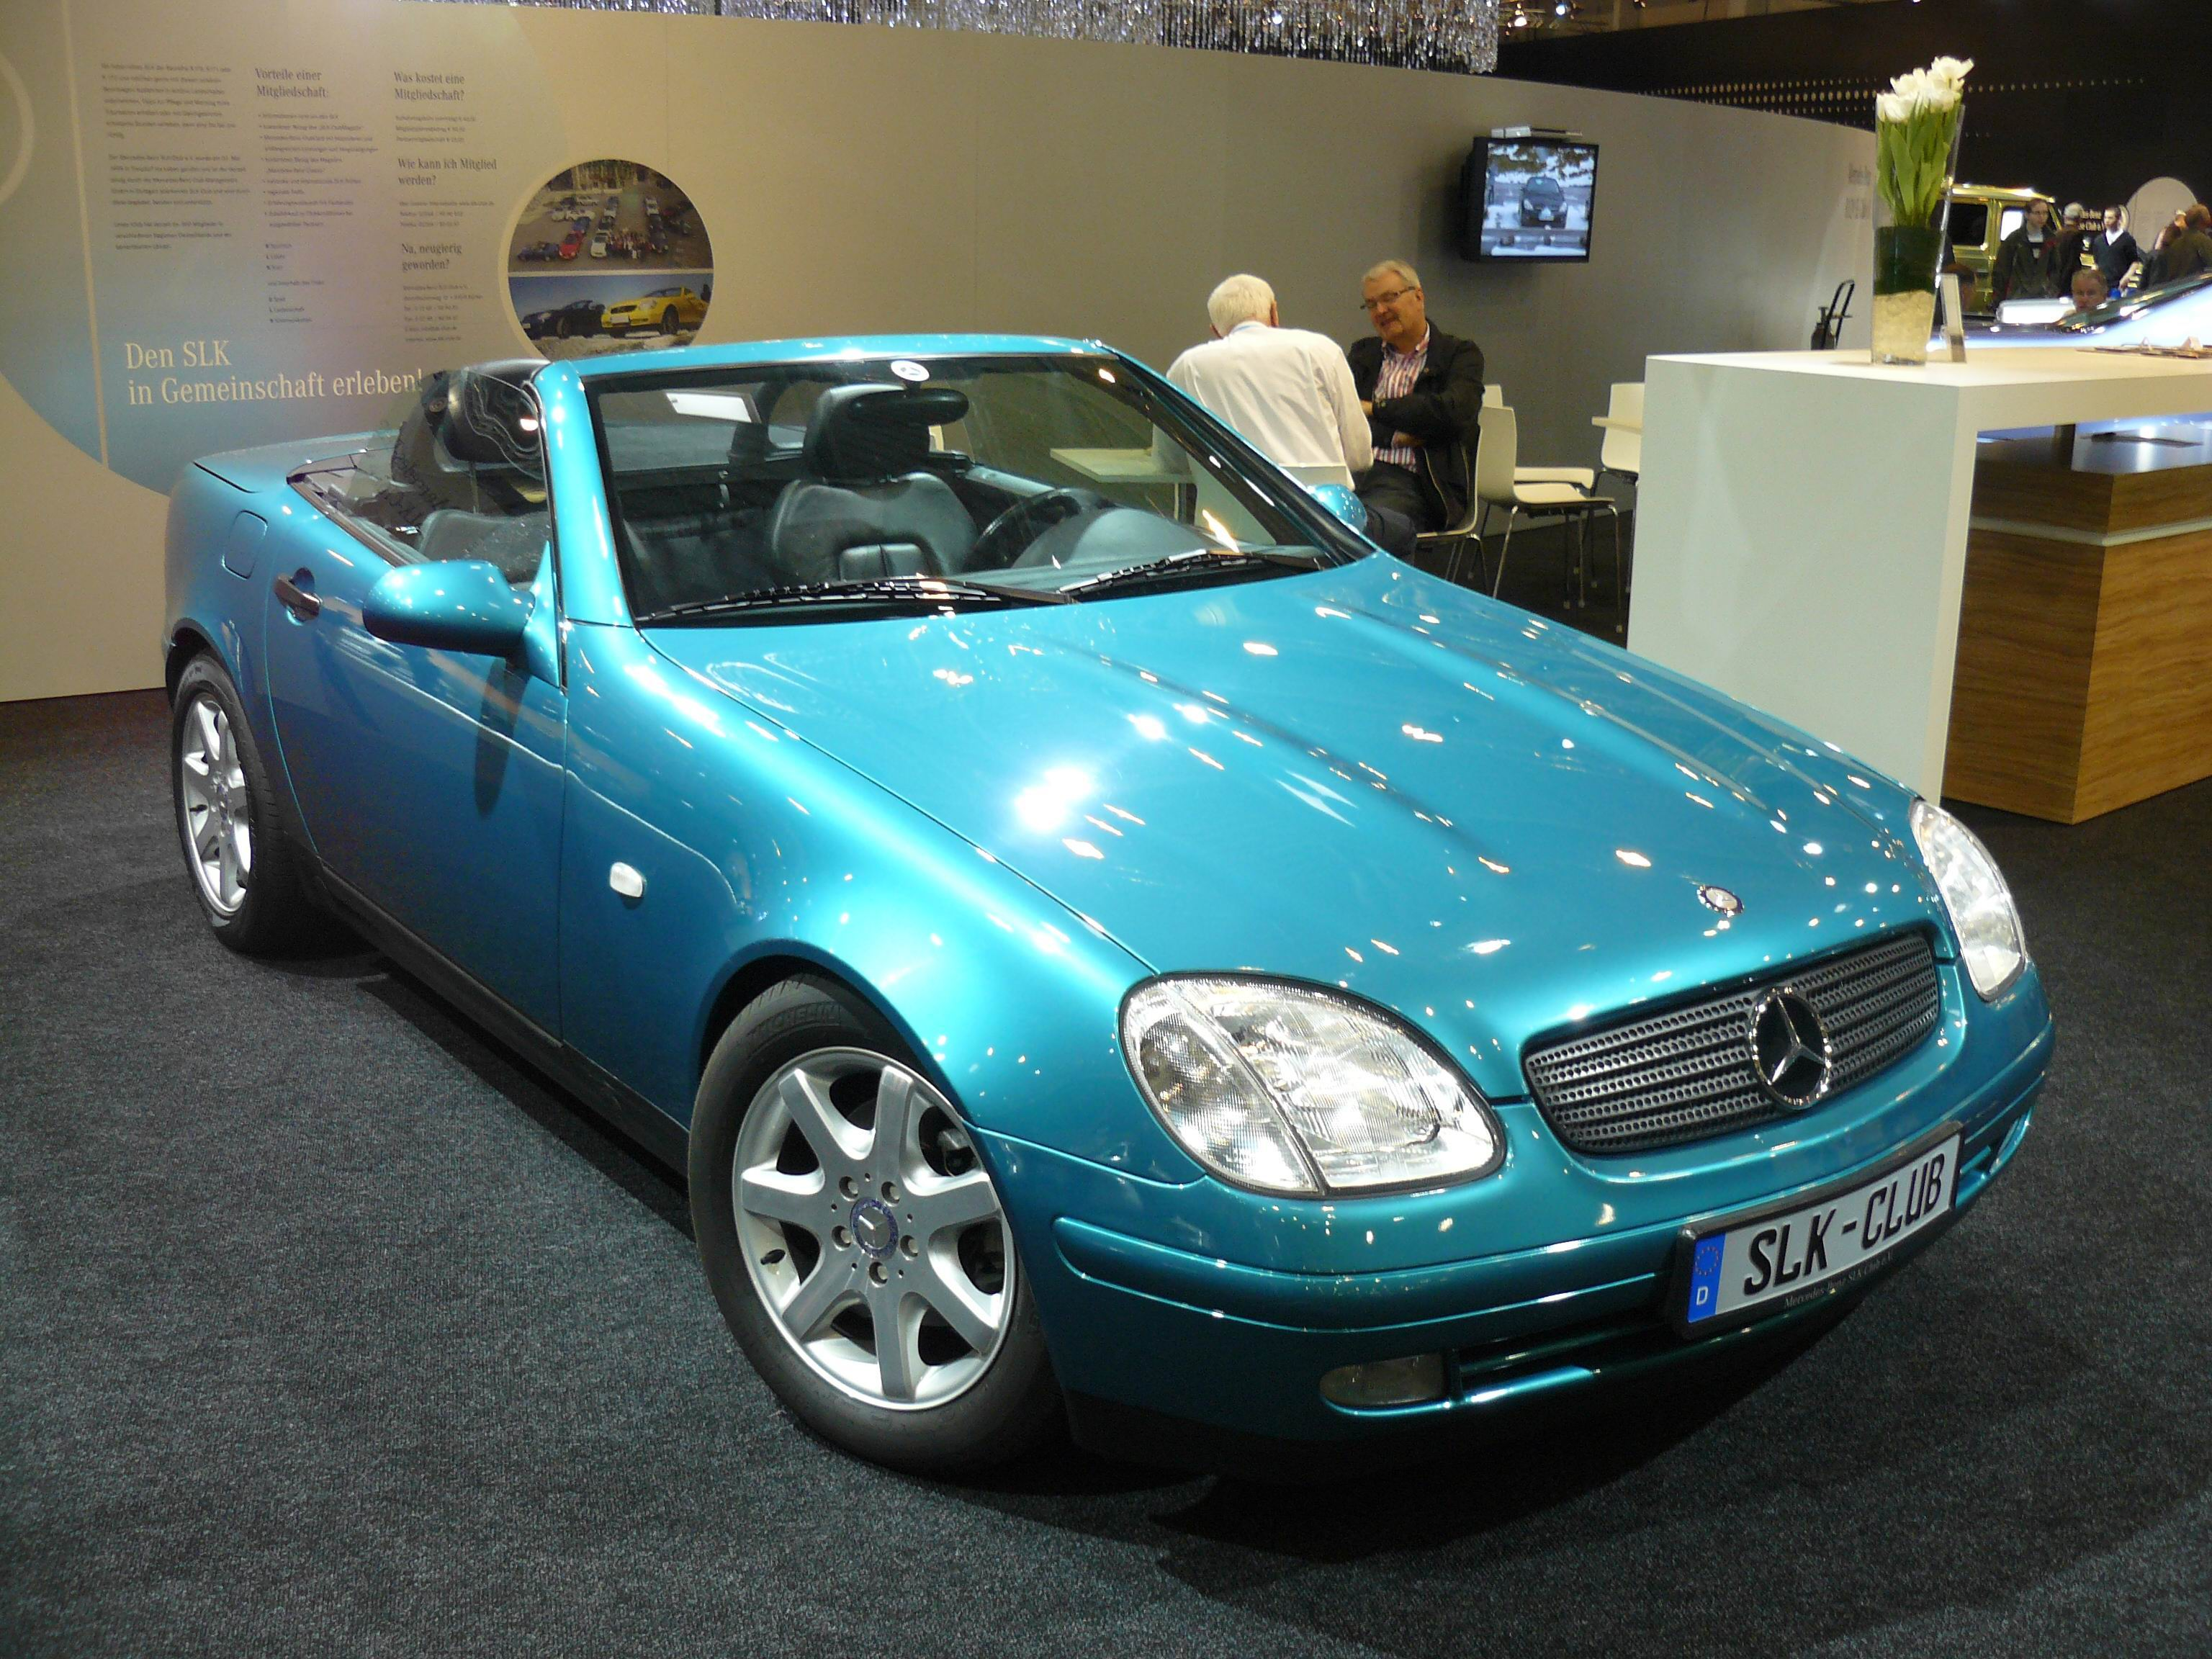 file mercedes slk 200 wikimedia commons. Black Bedroom Furniture Sets. Home Design Ideas